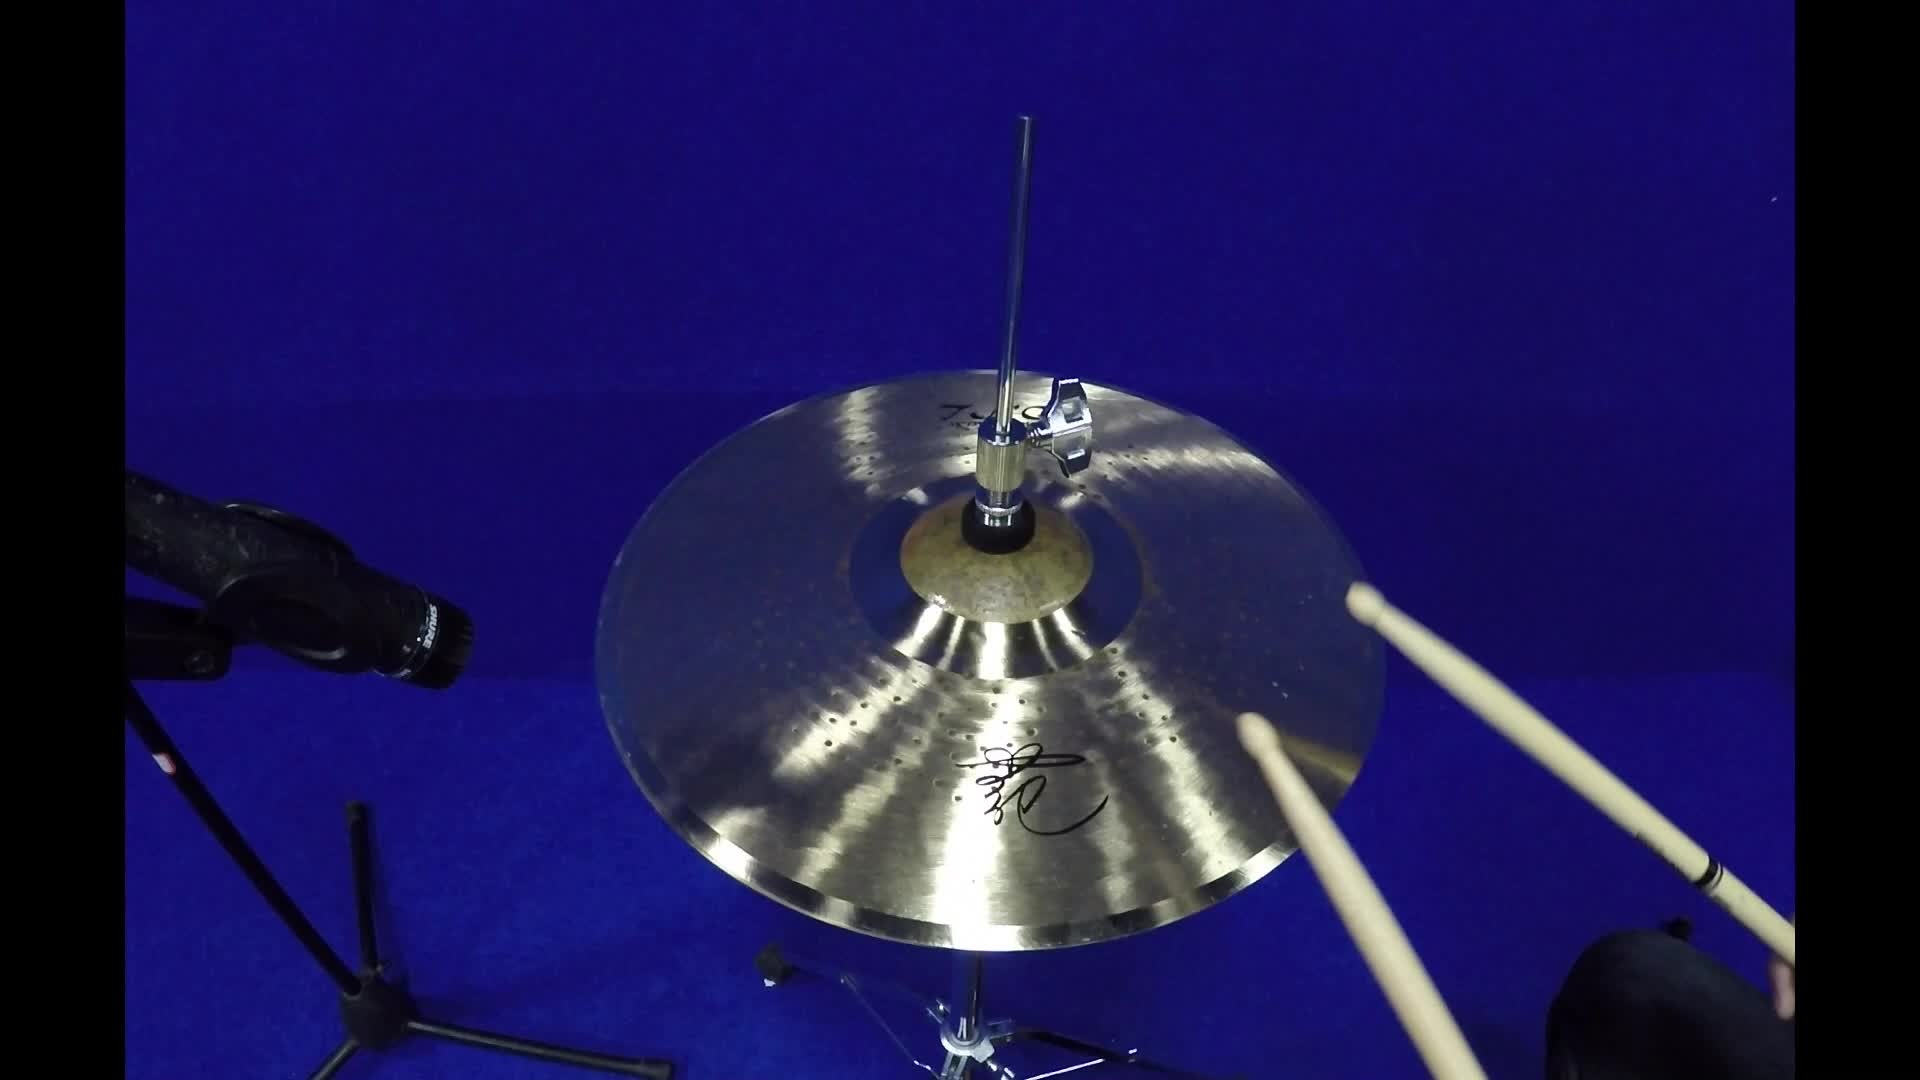 Oem professional Percussion Instrument  b20 Jazz cymbals for drum